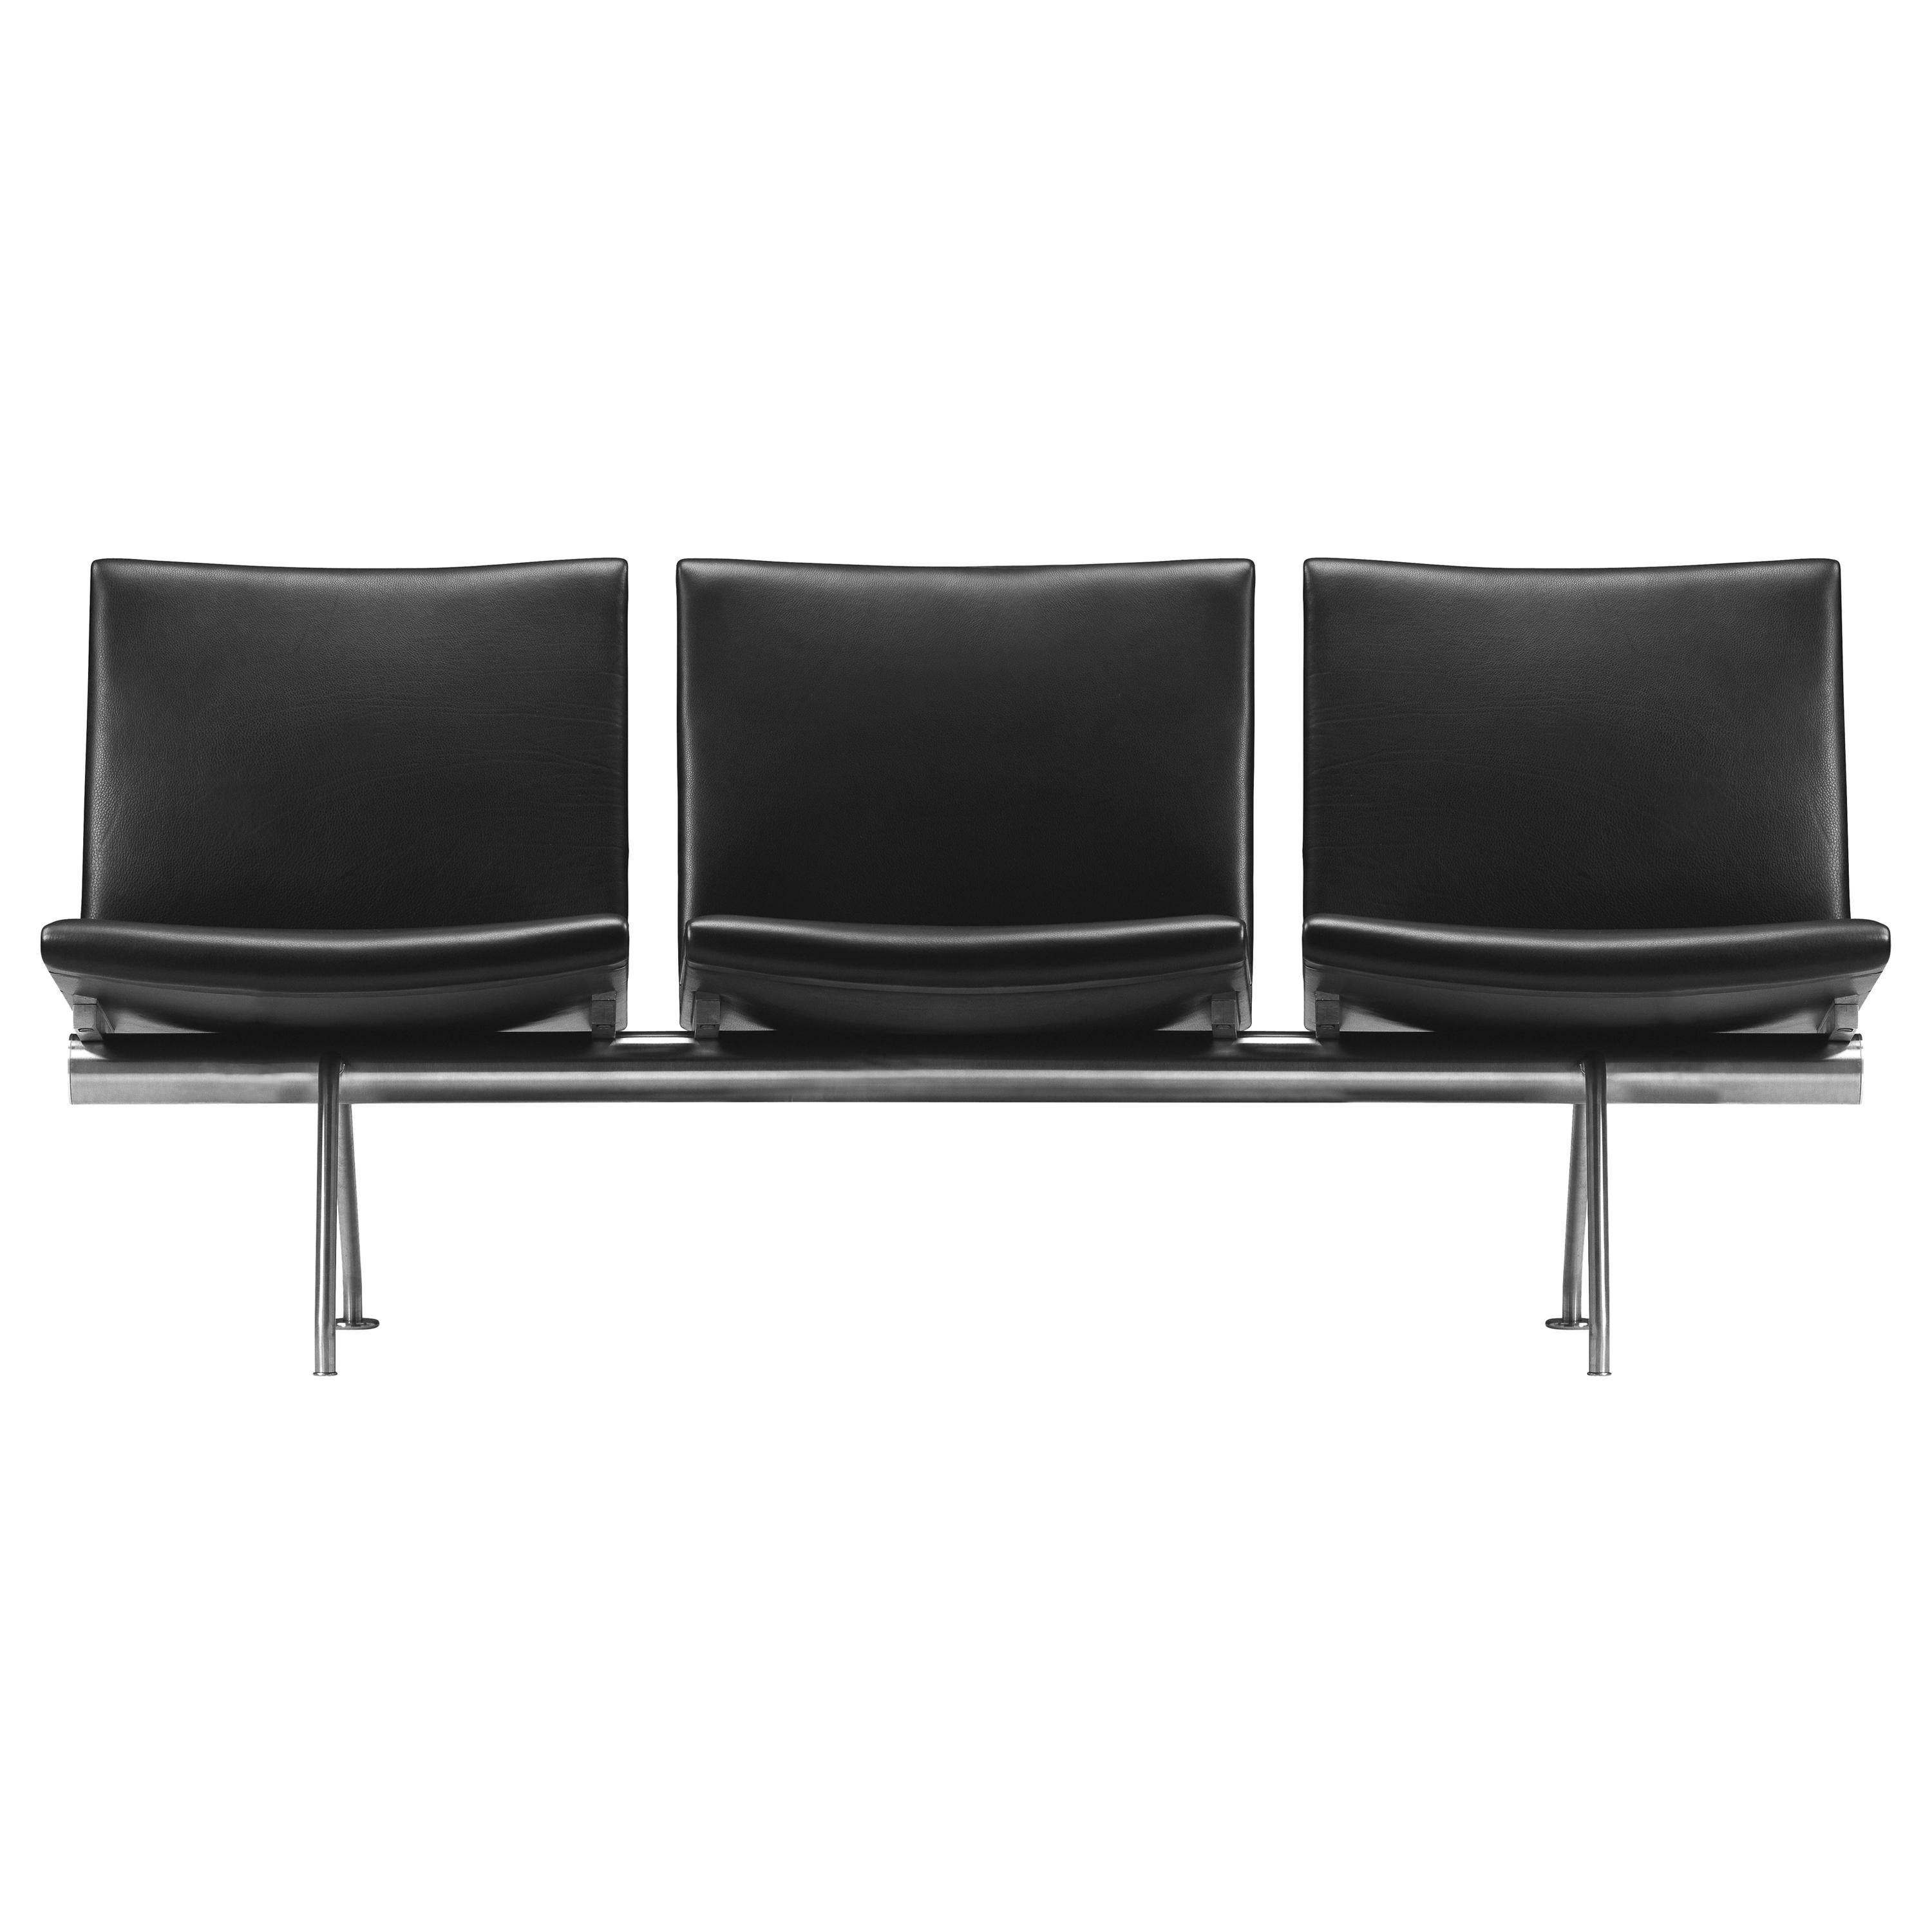 CH403 3-Seat Kastrup Sofa in Stainless Steel with Leather Seat by Hans J. Wegner